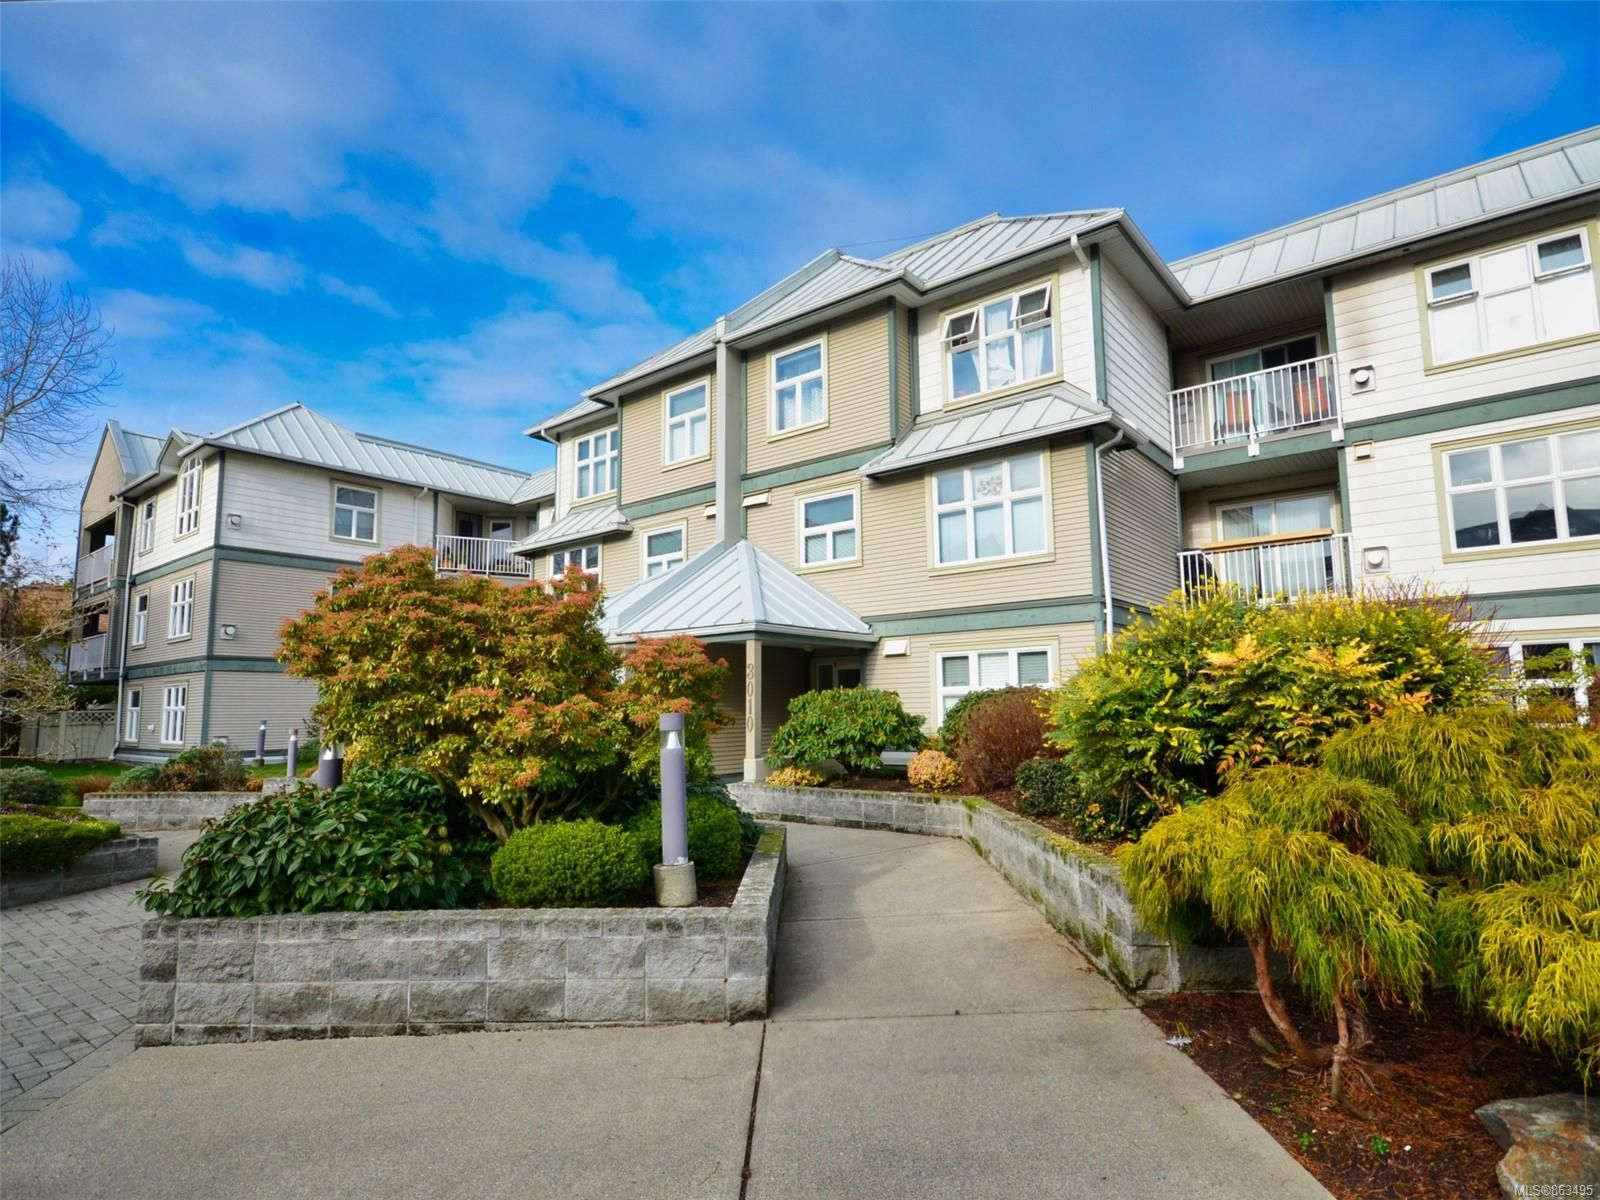 Main Photo: 105 3010 Washington Ave in : Vi Burnside Condo for sale (Victoria)  : MLS®# 863495